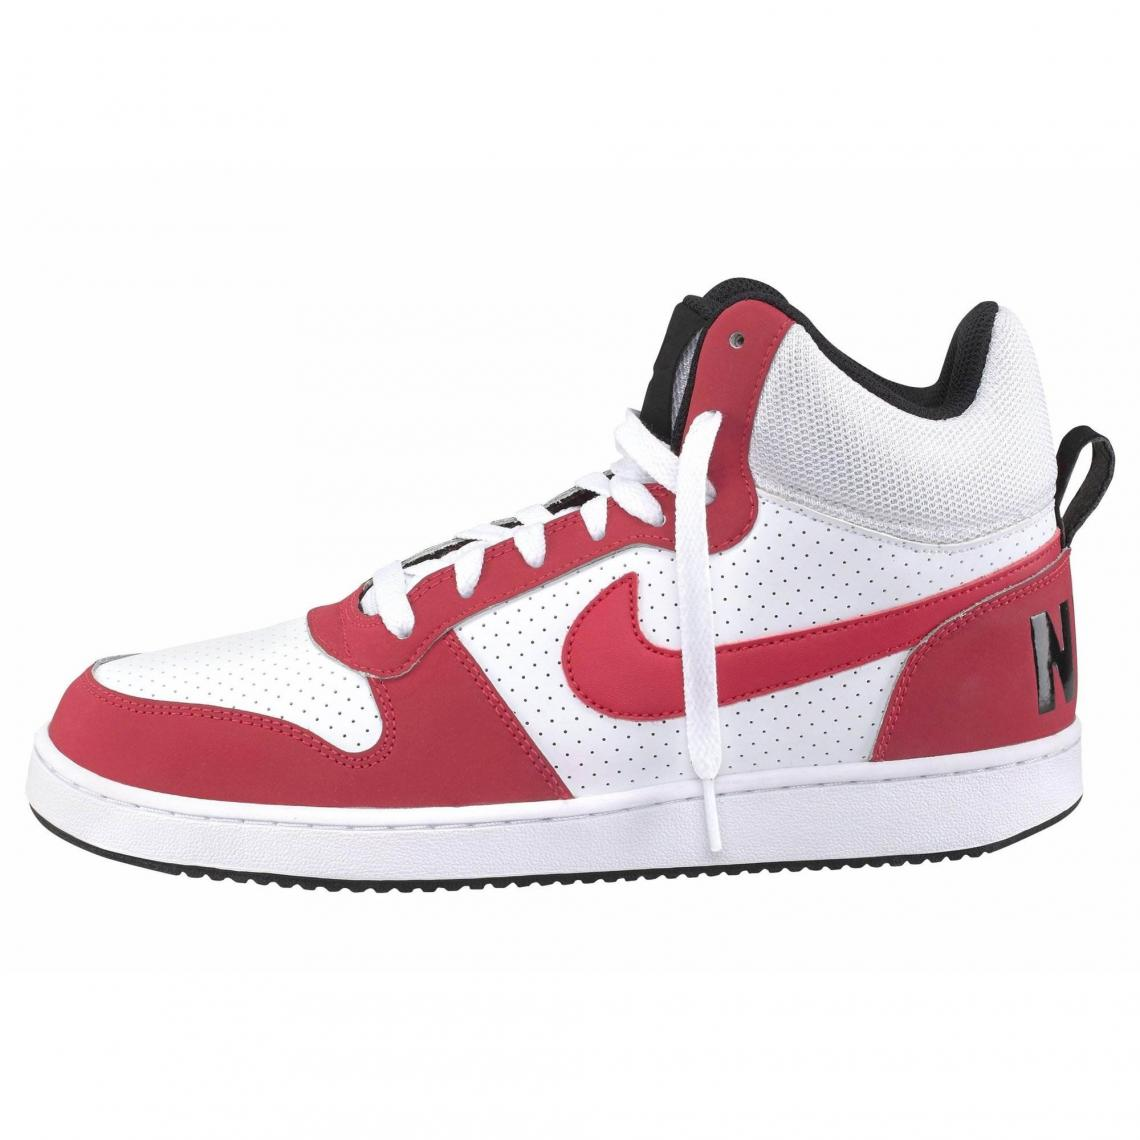 78c963ef83ed Nike Court Borough Mid chaussure semi-montante homme - Blanc - Rouge ...